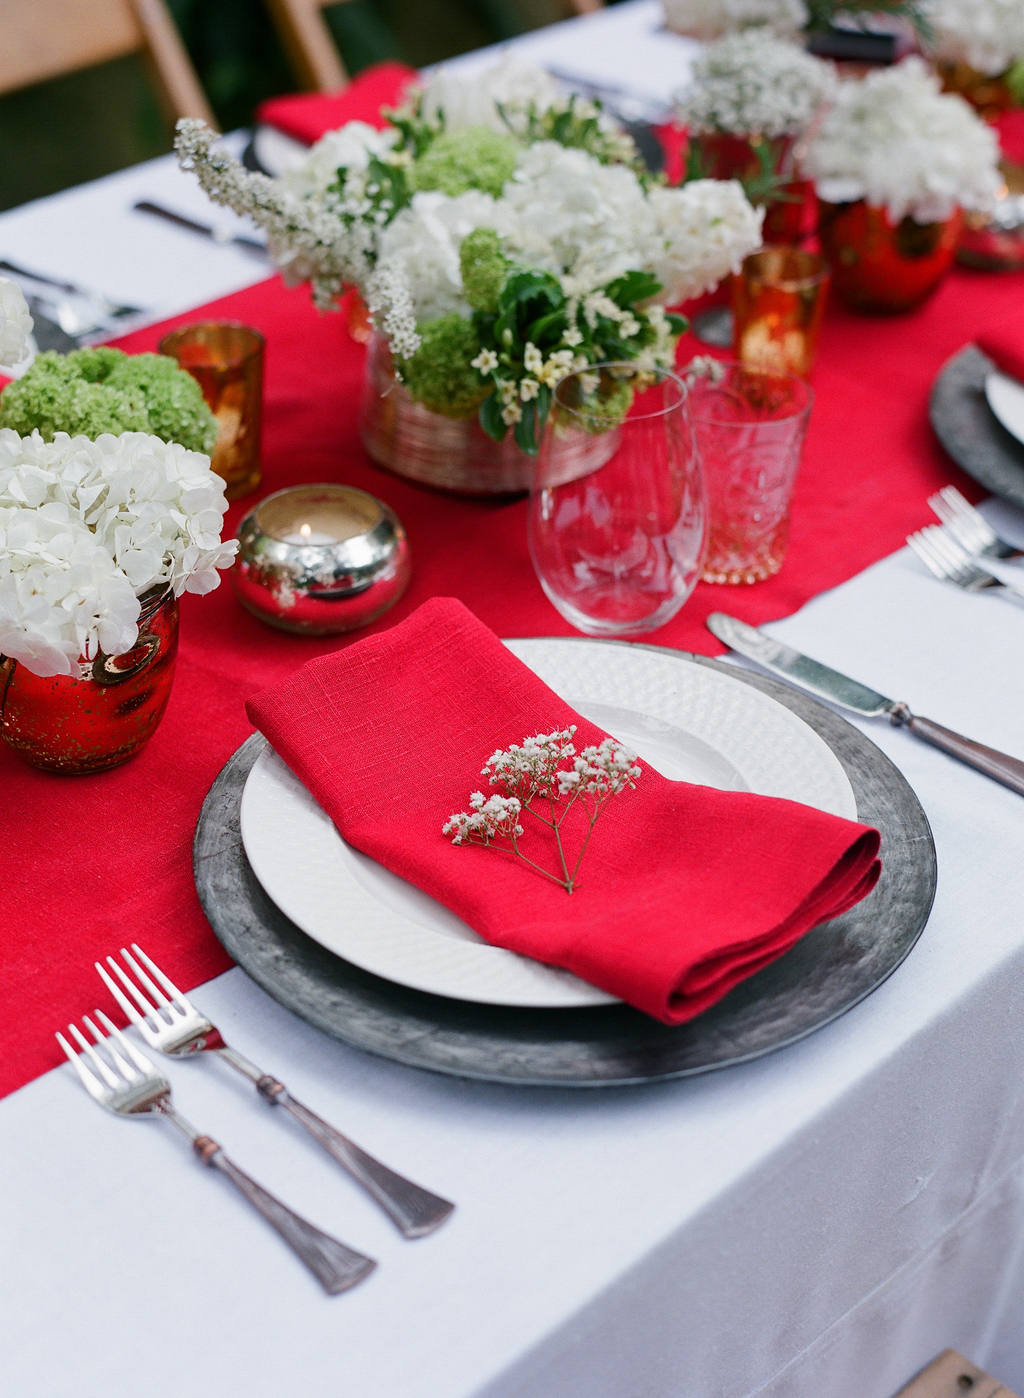 Styled-wedding-santa-barbara-chic-beaux-arts-photographie-italian-bohemian-wedding-venue-table-setting-red-white-flowers-antique-glass-095.full